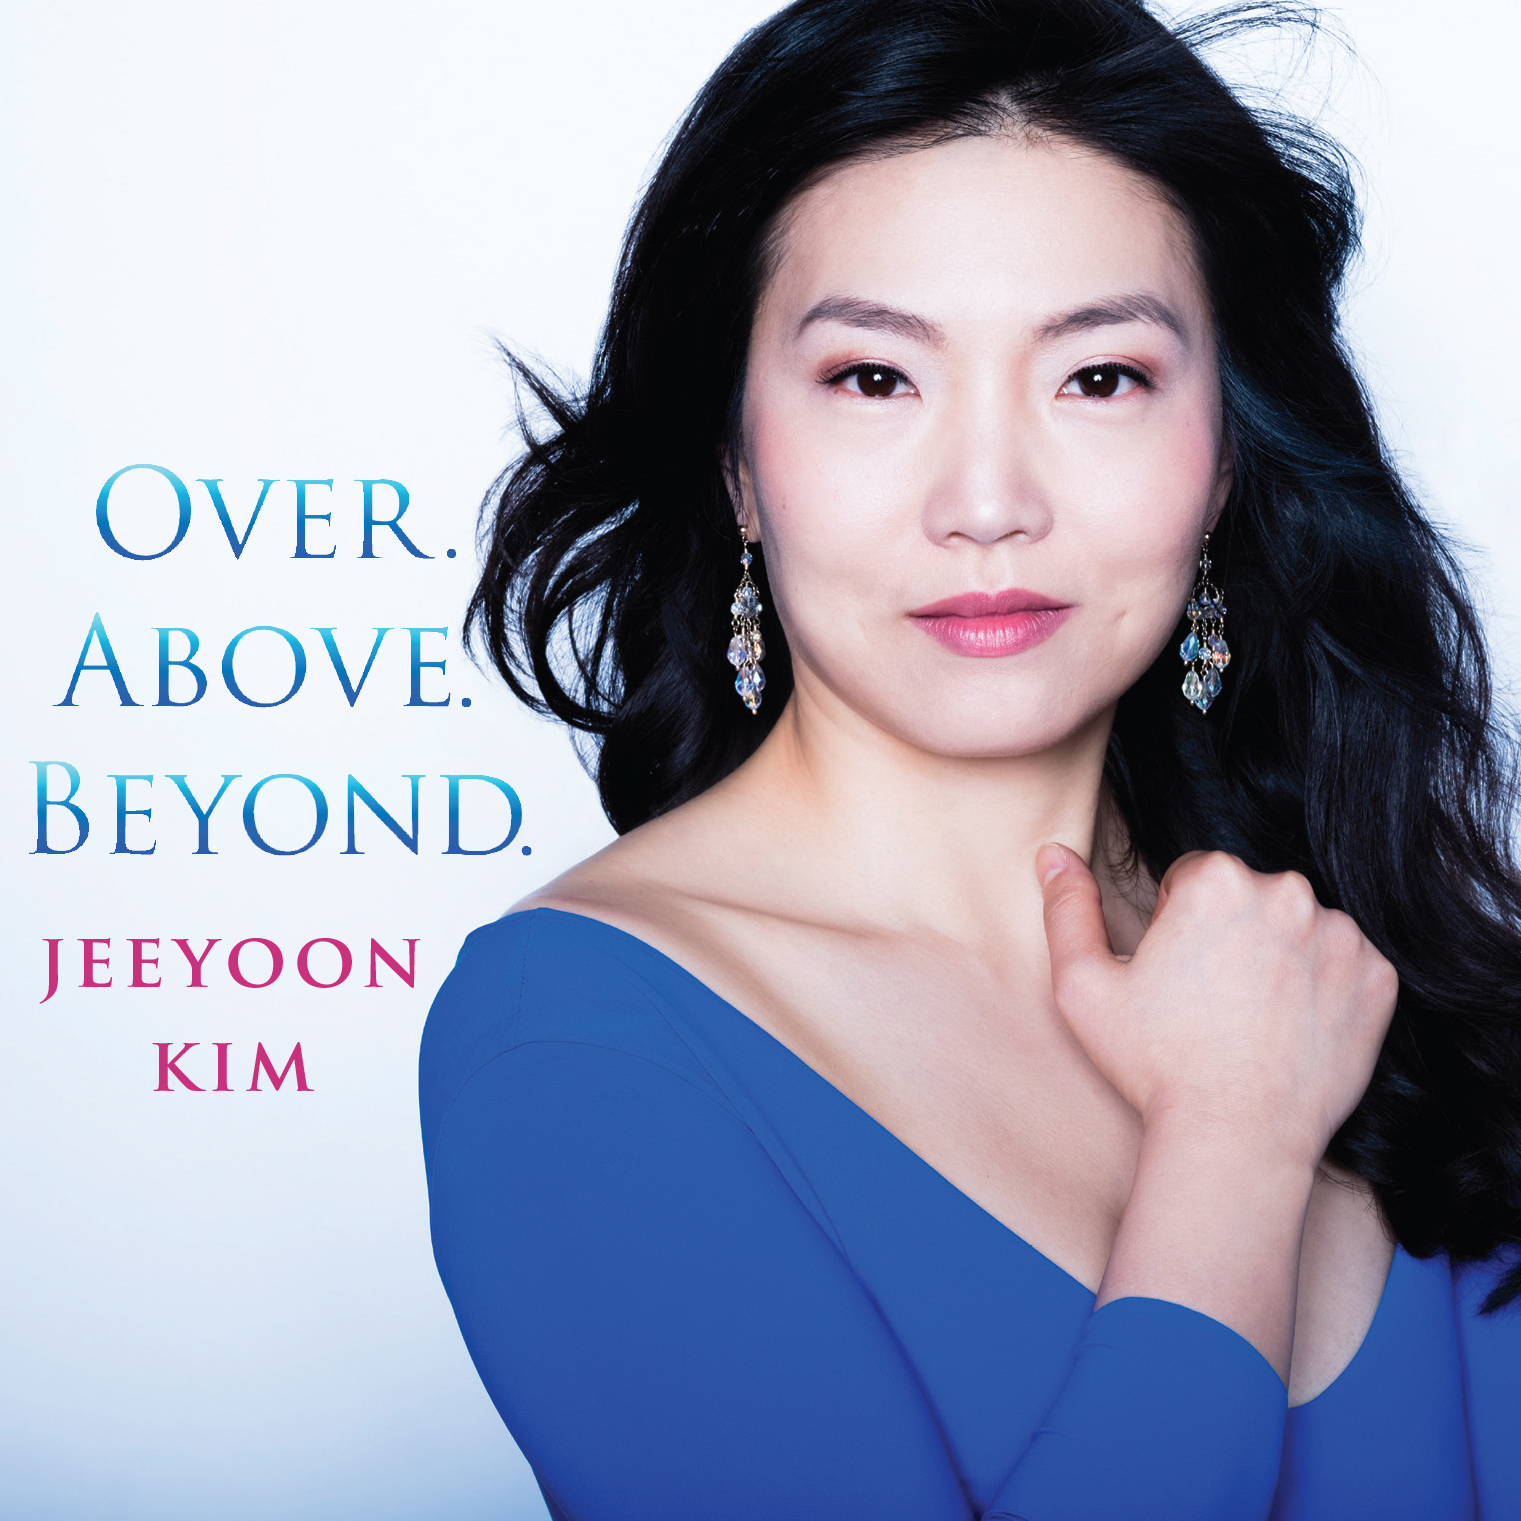 Over. Above. Beyond. cover.jpg